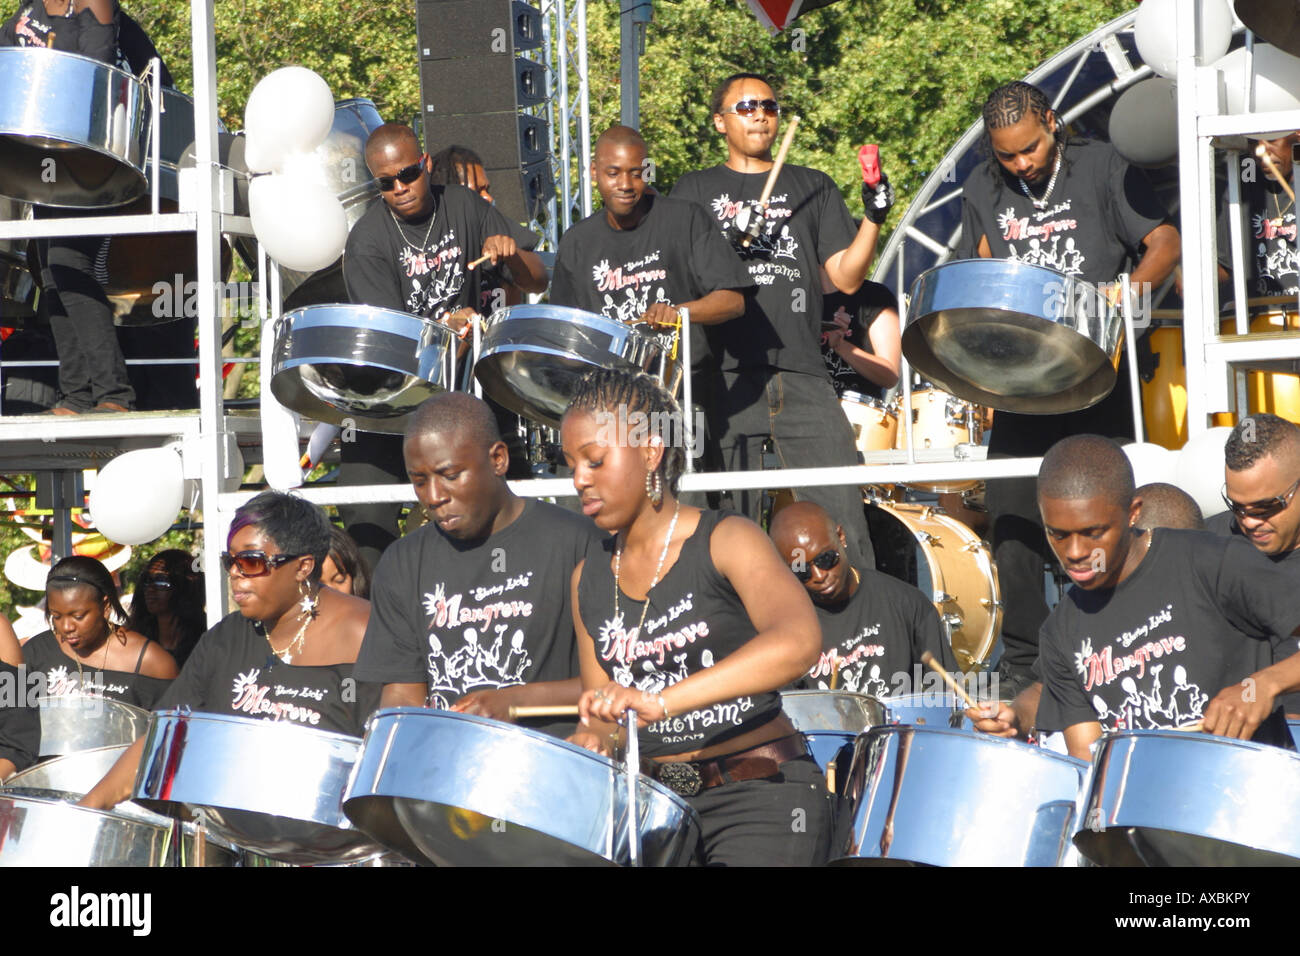 enjoy steel panorama mangrove uk prepare aug stock at to metronome photo hill notting prepares carnival s endurance steelpan horniman as judging london steelbands pleasance bands for